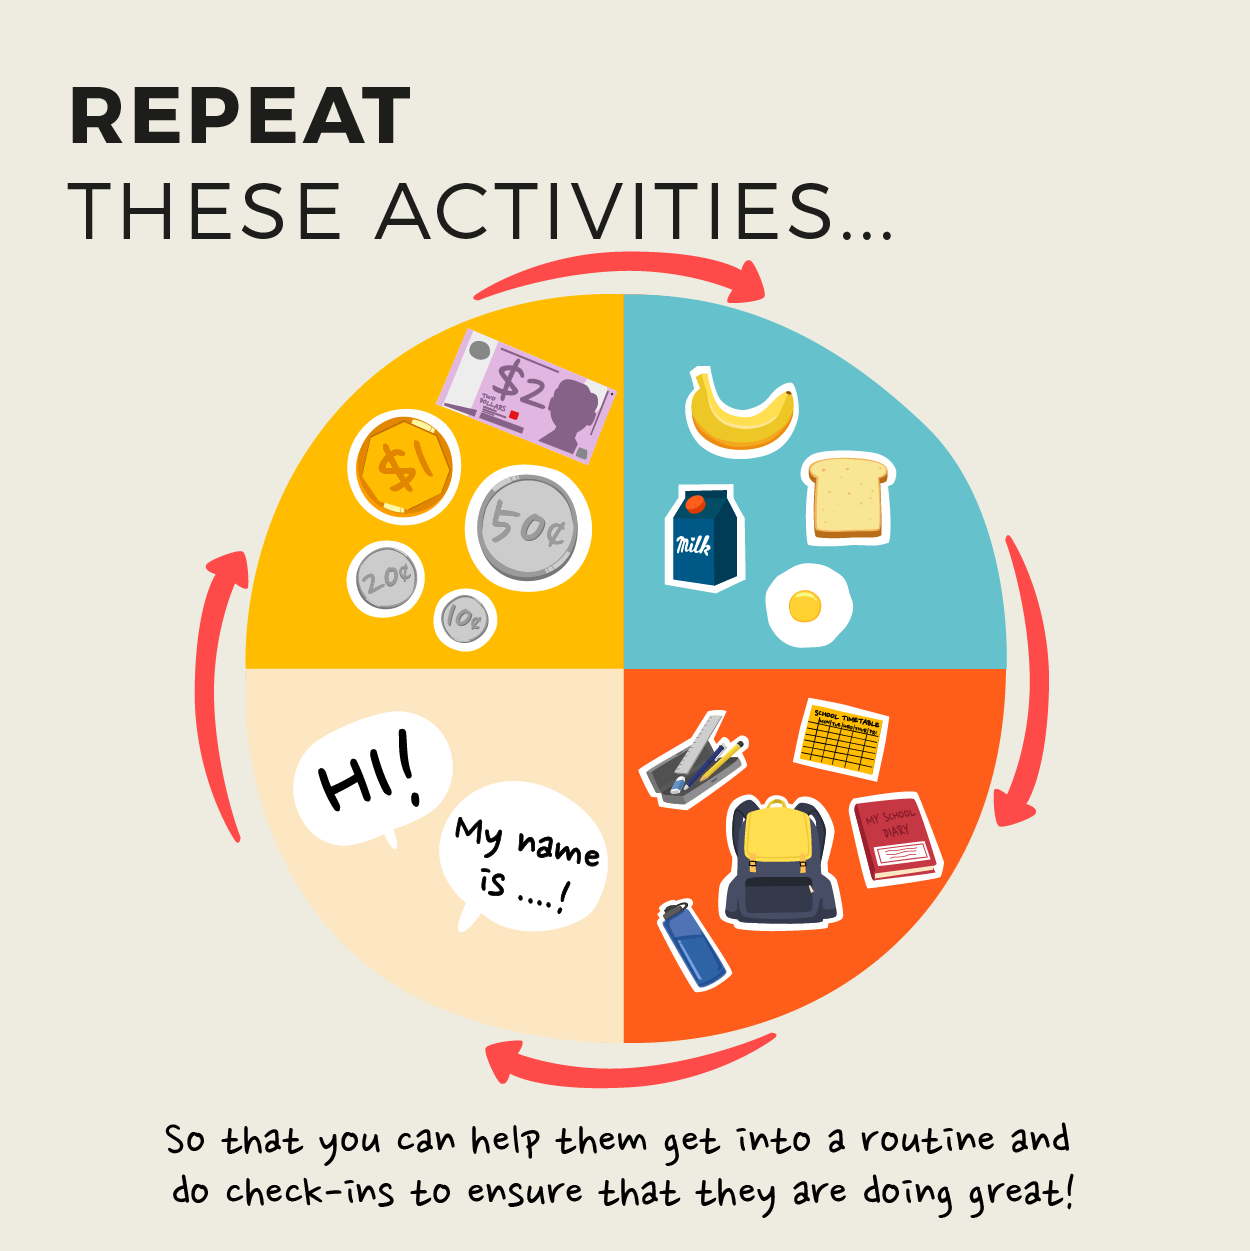 Repeat these activities